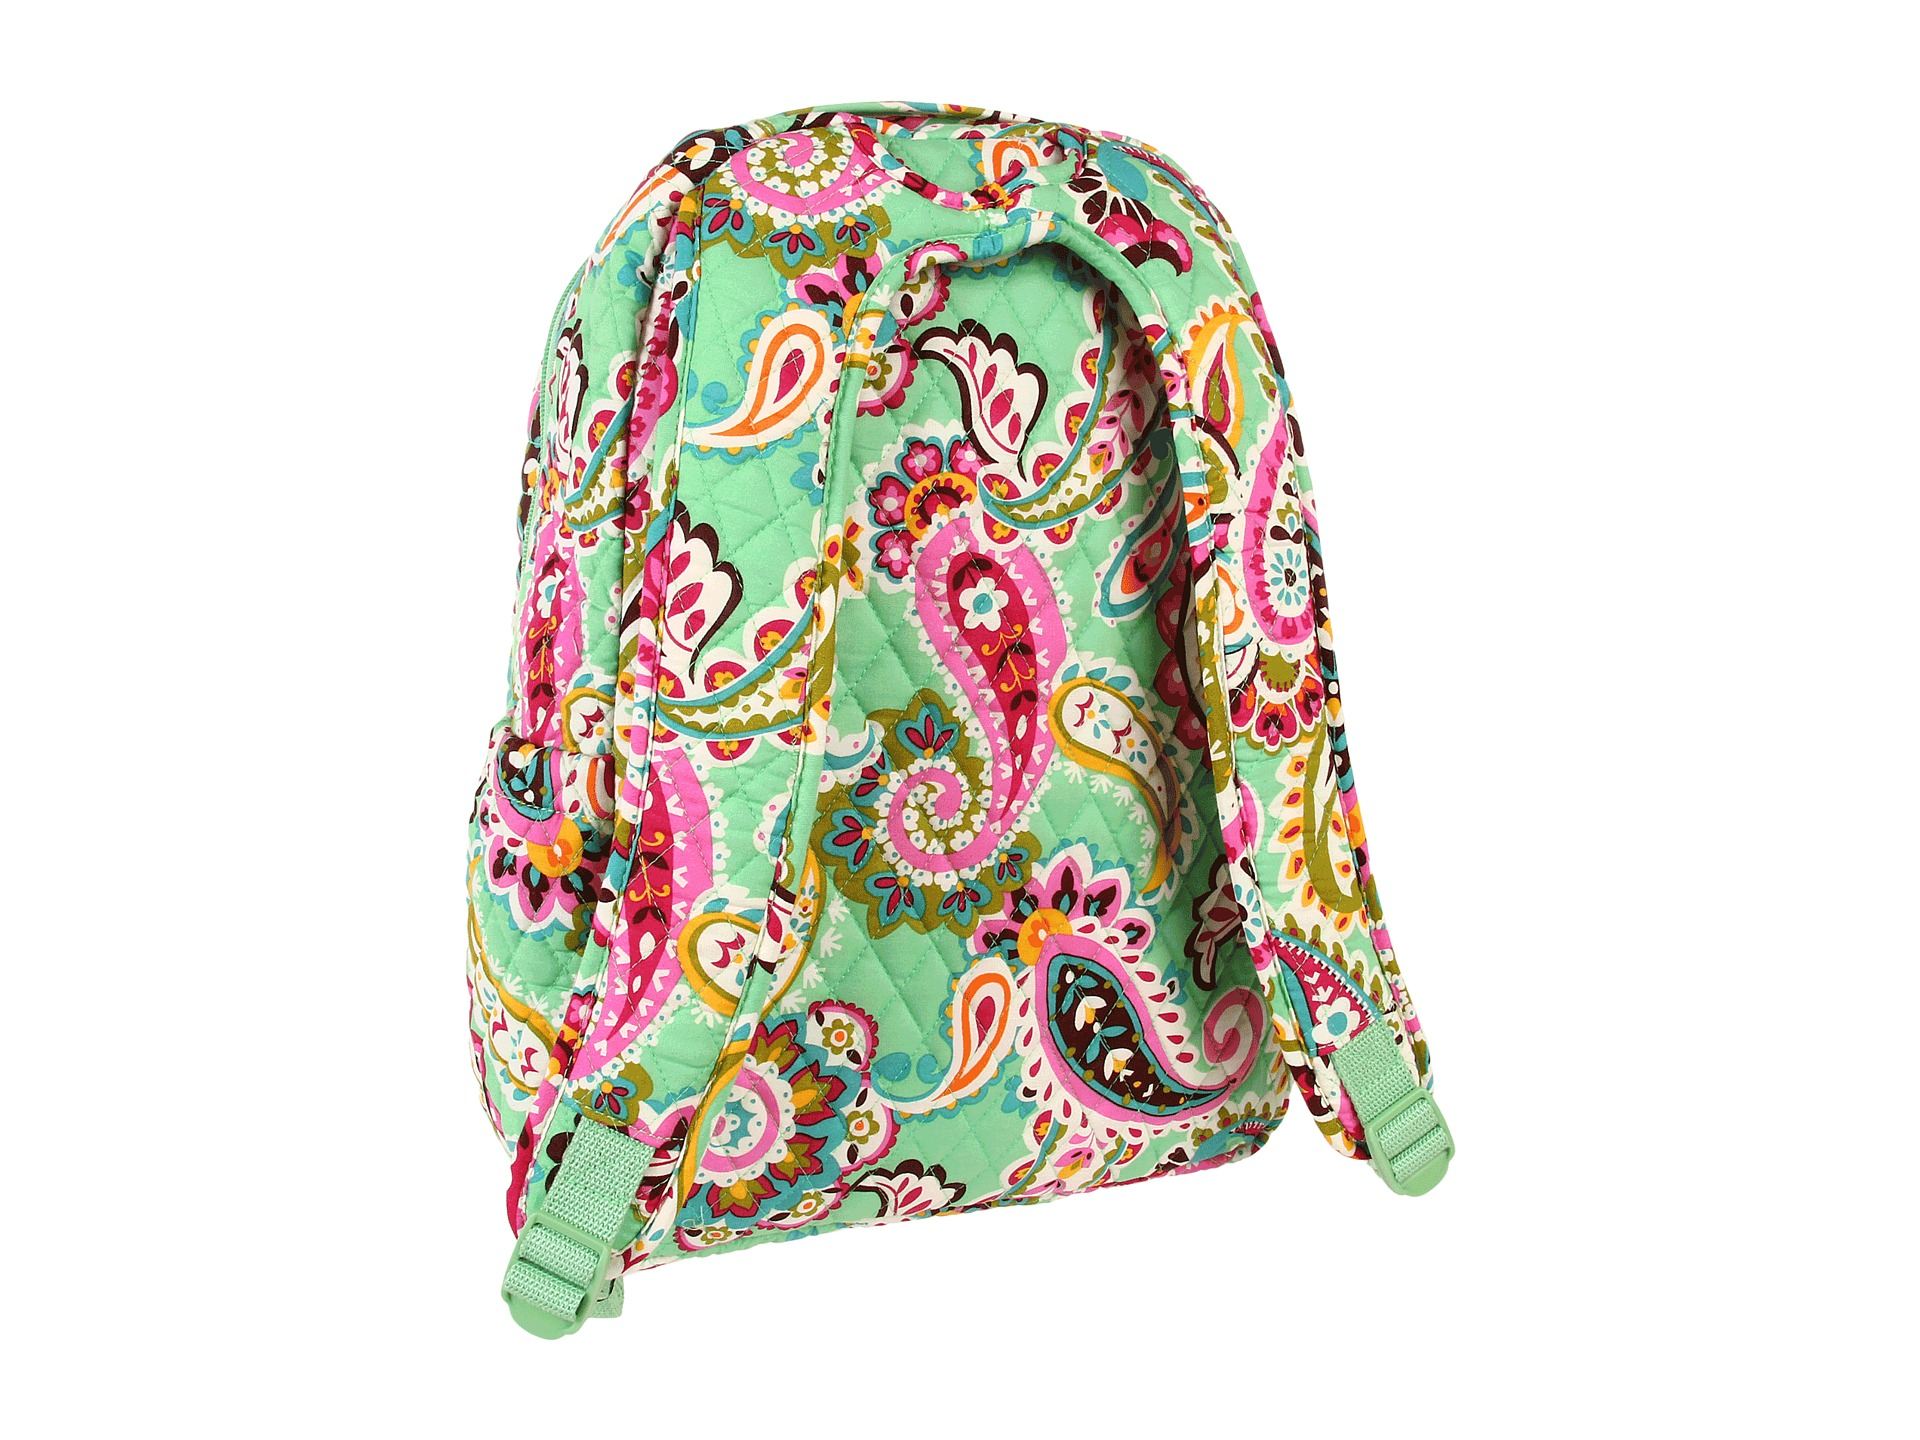 monogram tote bags vera bradley baby backpack. Black Bedroom Furniture Sets. Home Design Ideas